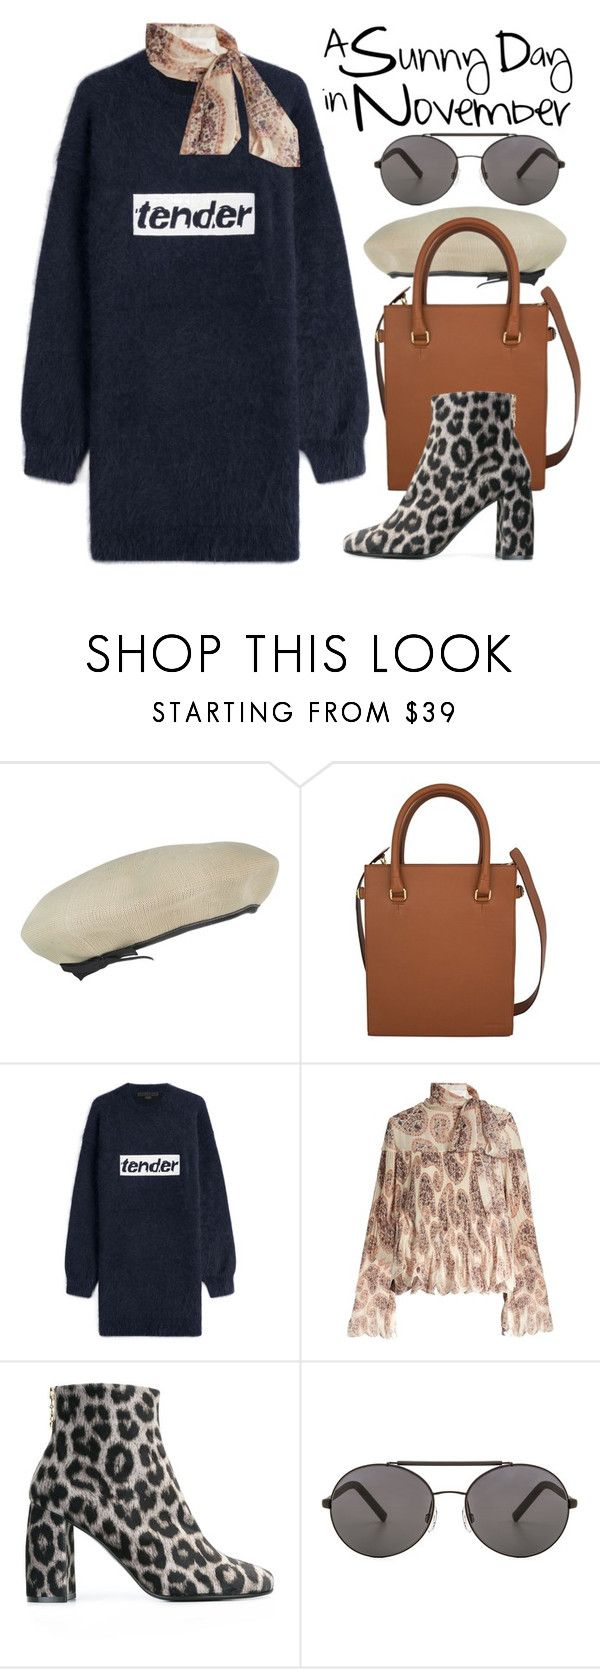 """""""A Sunny Day in November"""" by ivansyd ❤ liked on Polyvore featuring kangol, Alexander Wang, See by Chloé, STELLA McCARTNEY, Seafolly, sweaterdress and animalprintshoes"""